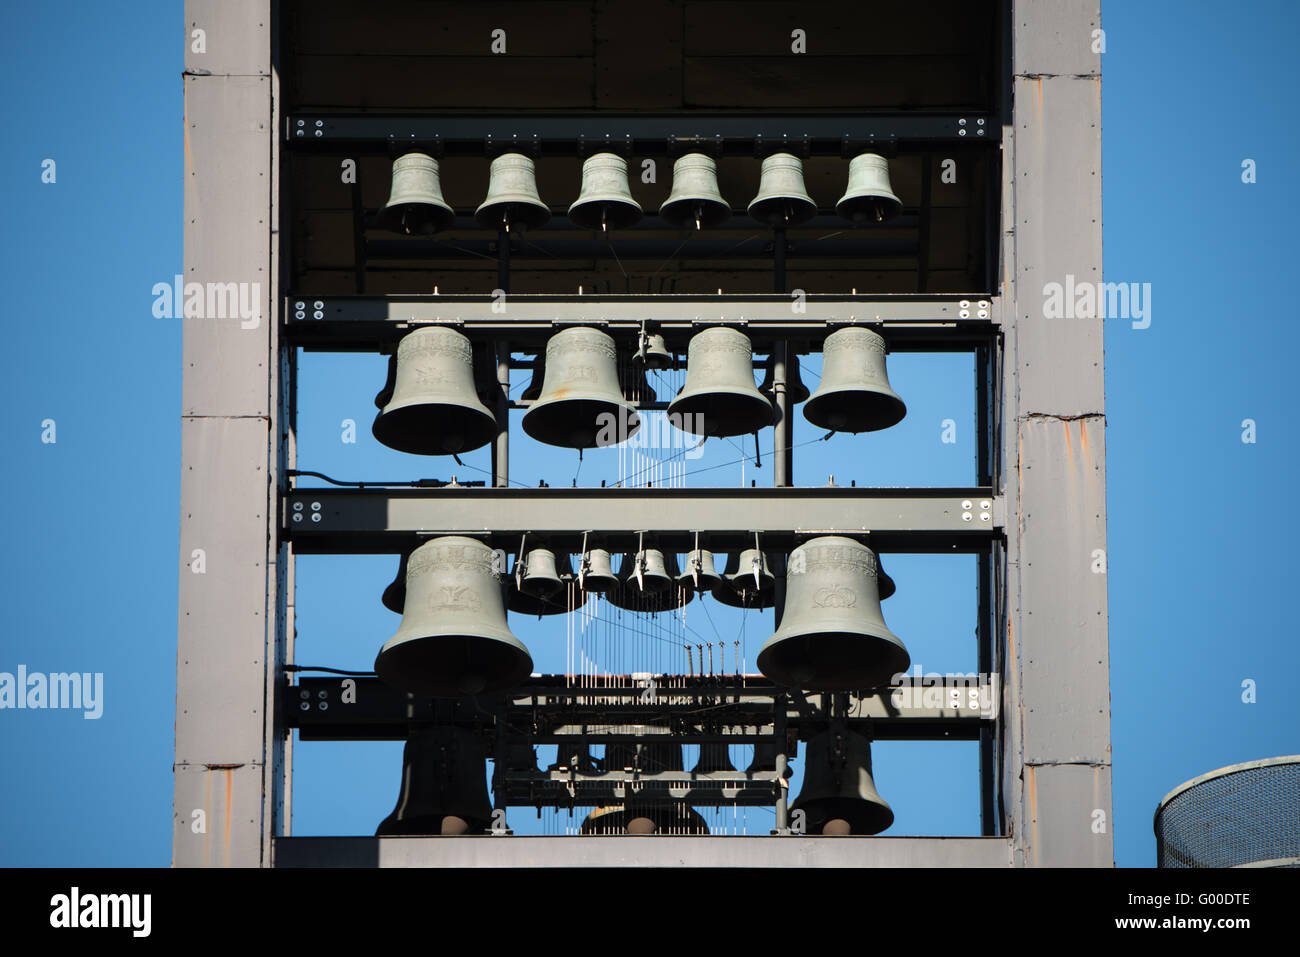 ARLINGTON, VIRGINIA - The Netherlands Carillon, a gift from the Netherlands to the United States in gratitude for Stock Photo